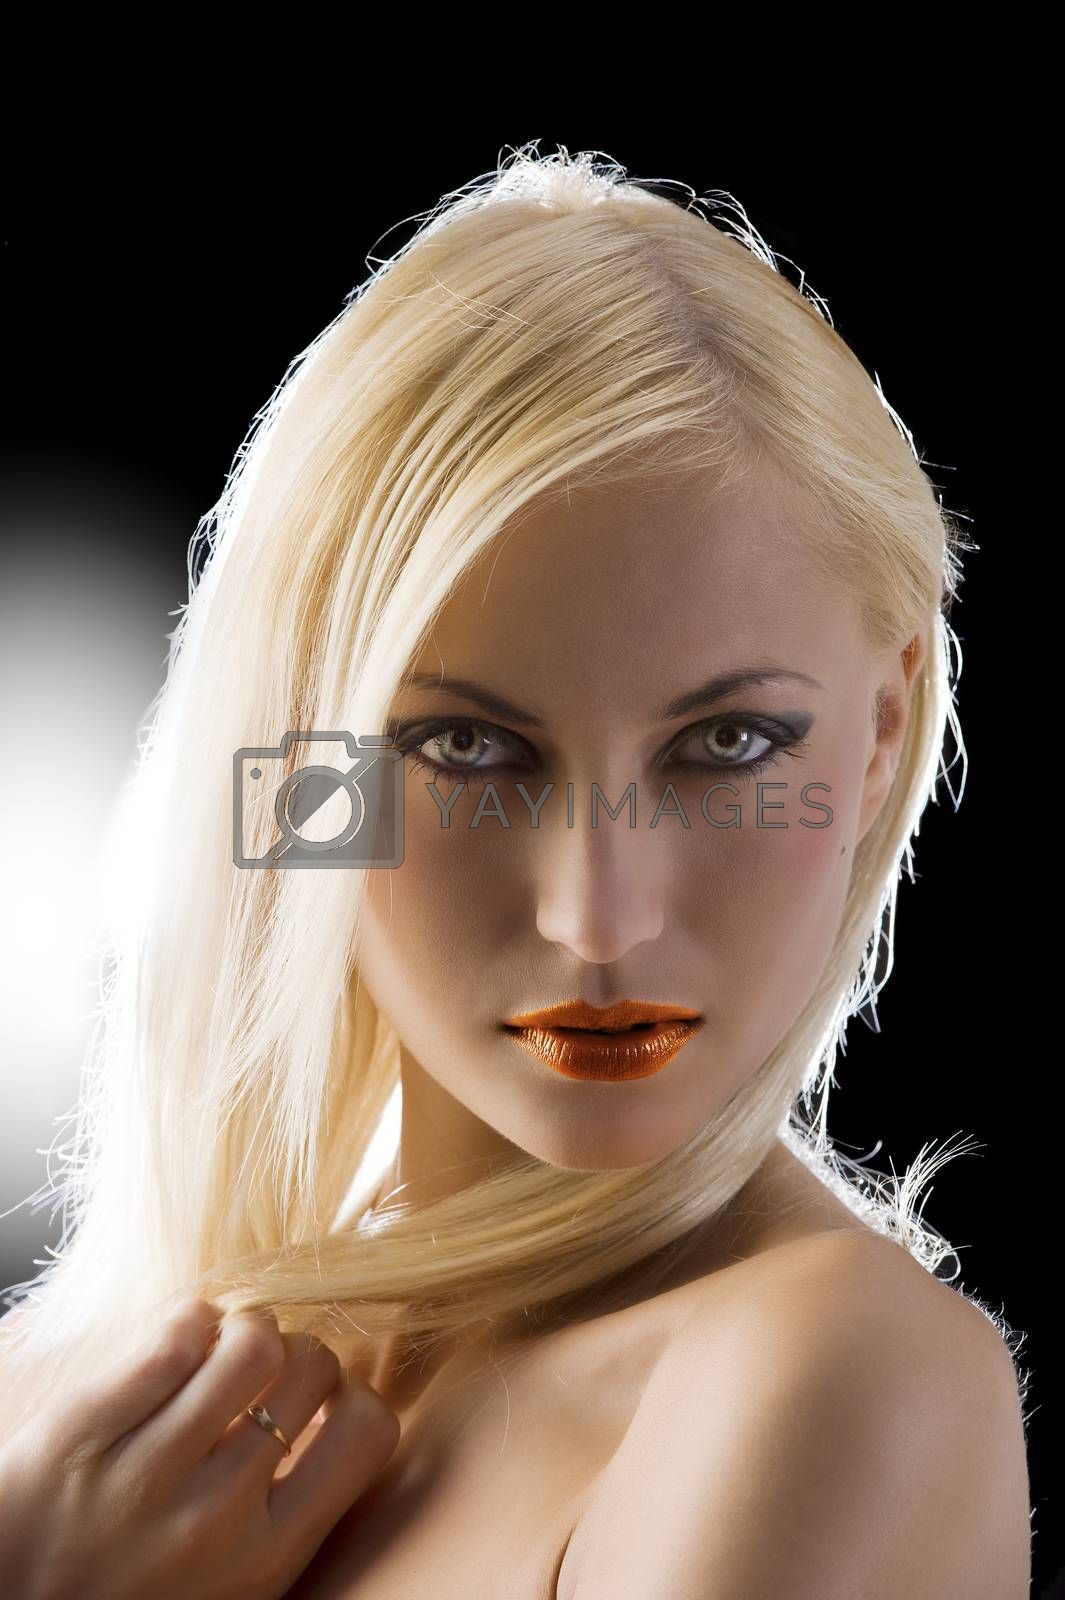 Royalty free image of blond with blue eyes by fotoCD